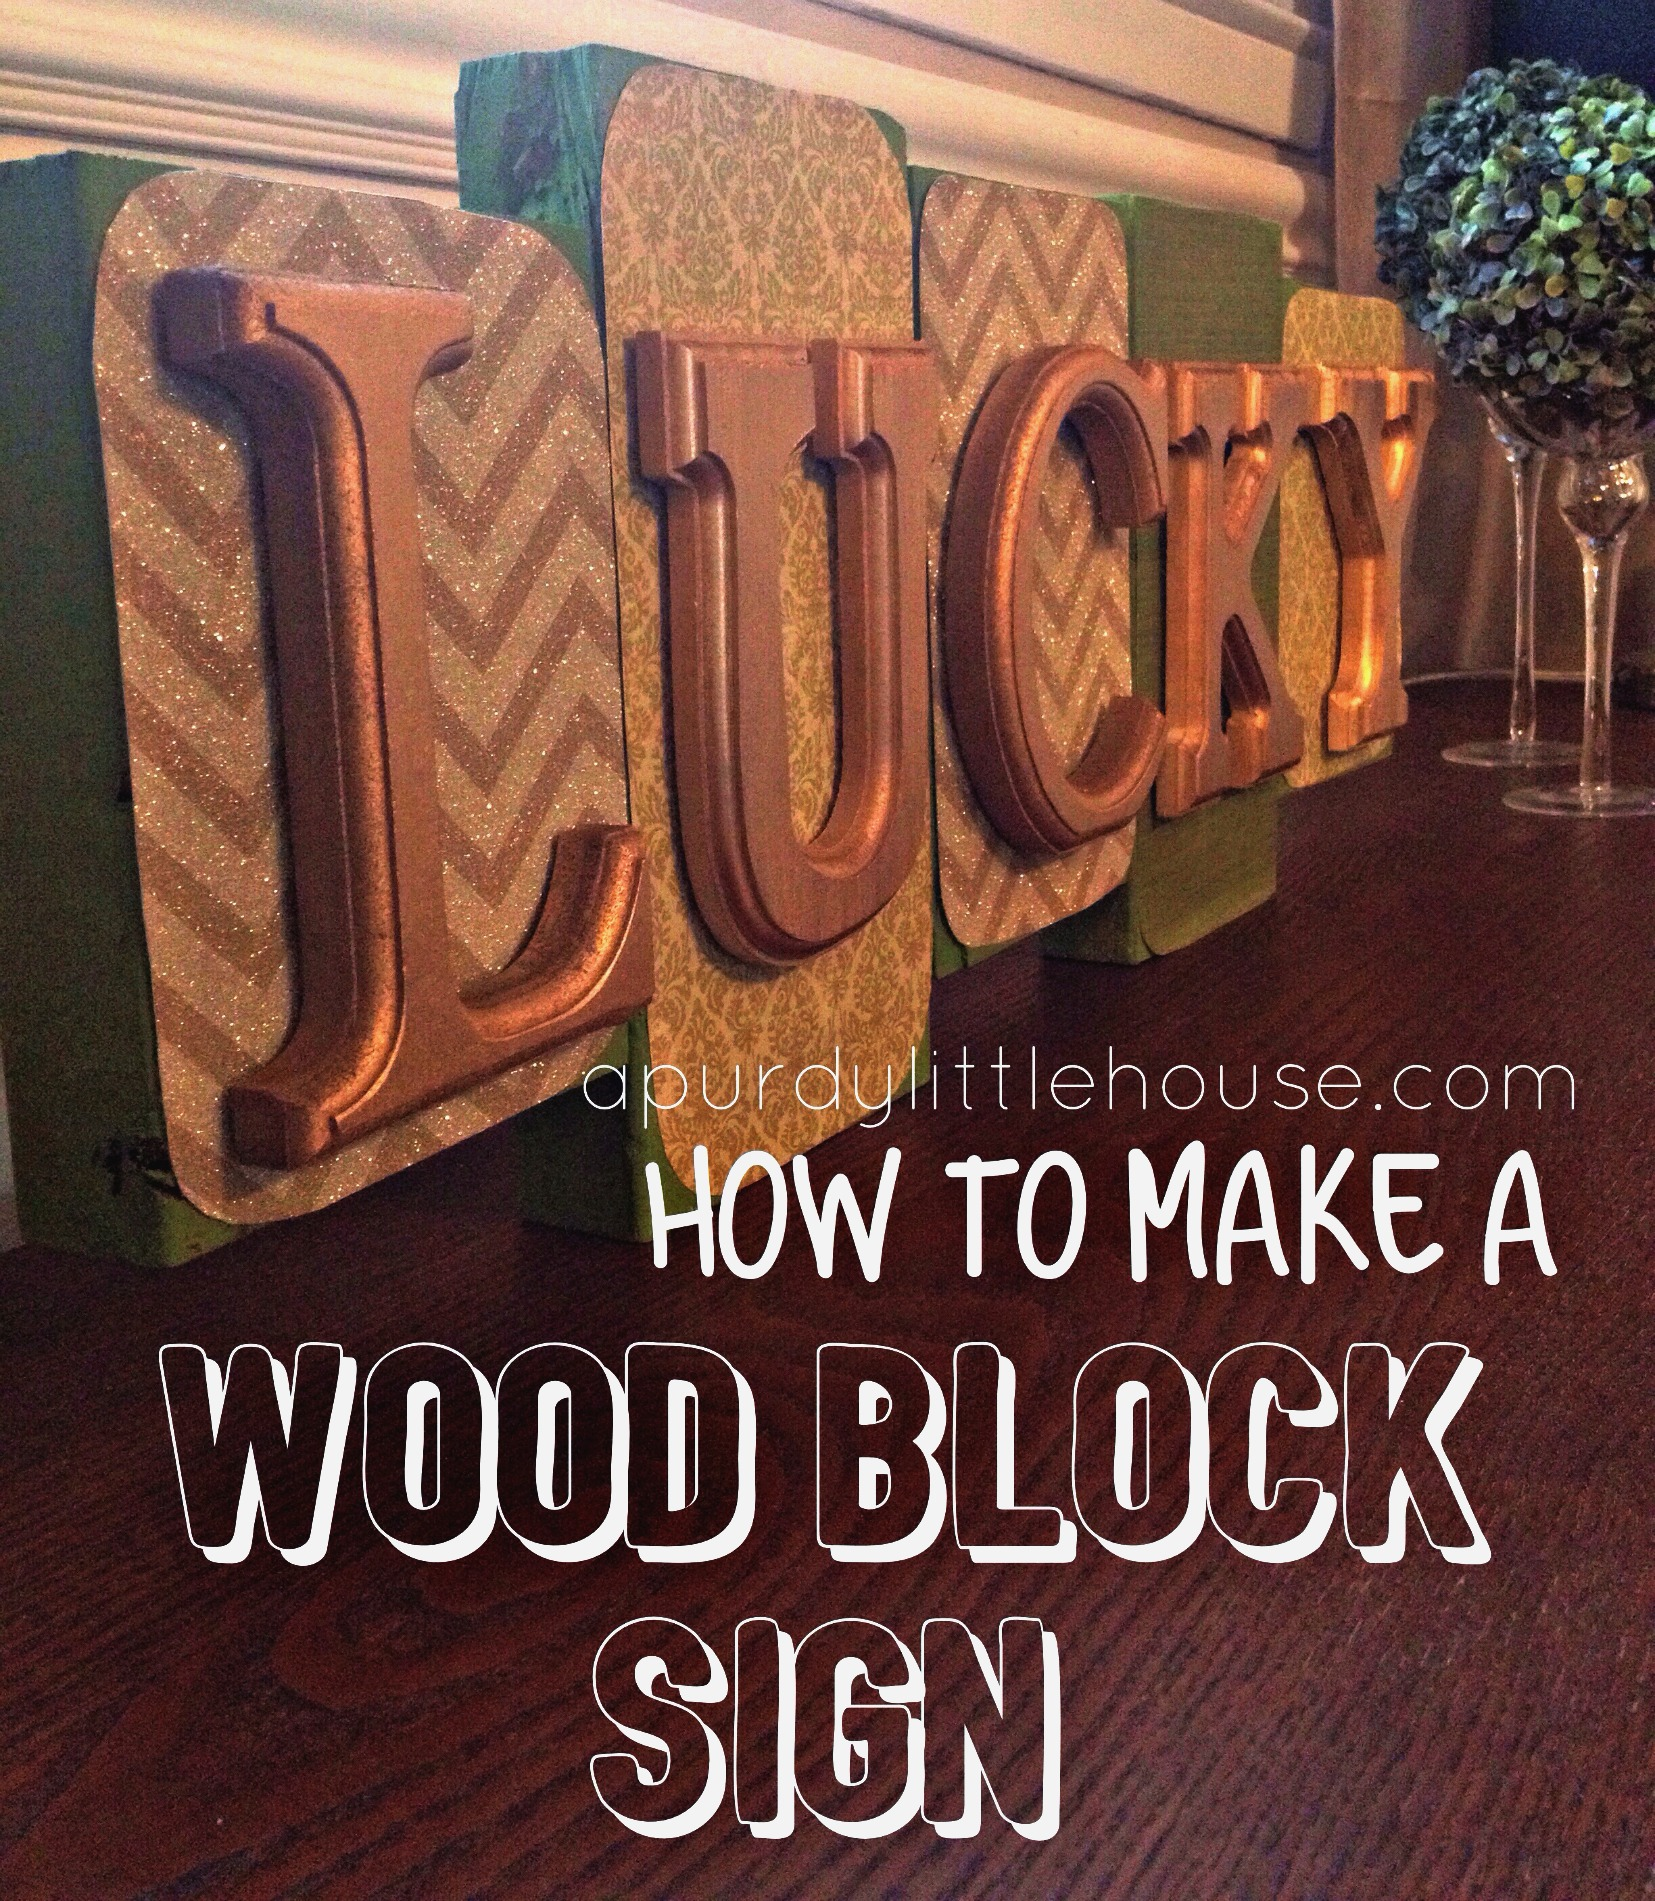 How To Make A Wood Block Sign